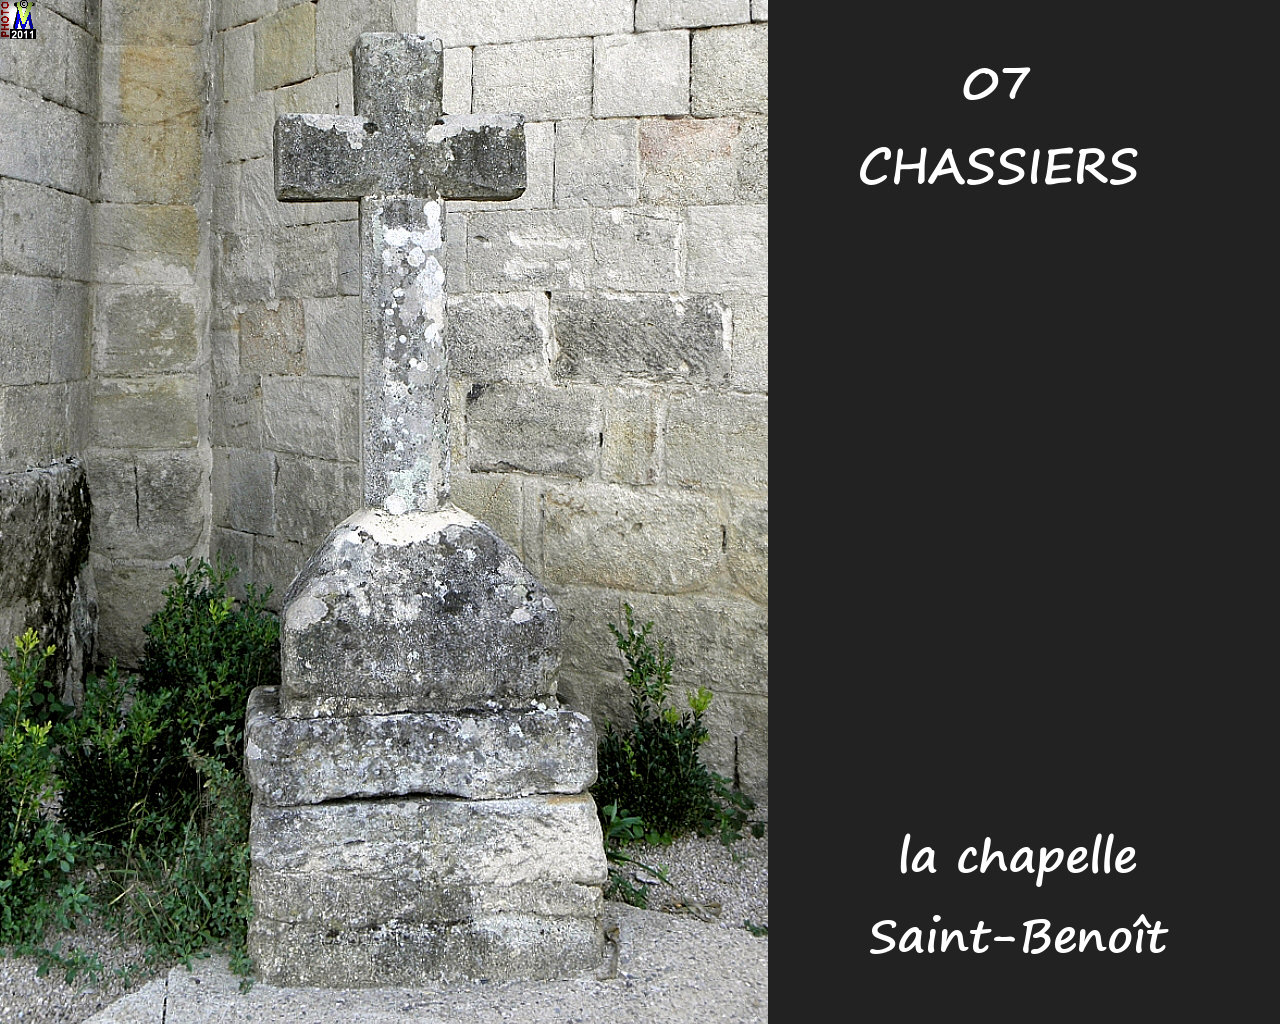 07CHASSIERS_chapelle_300.jpg